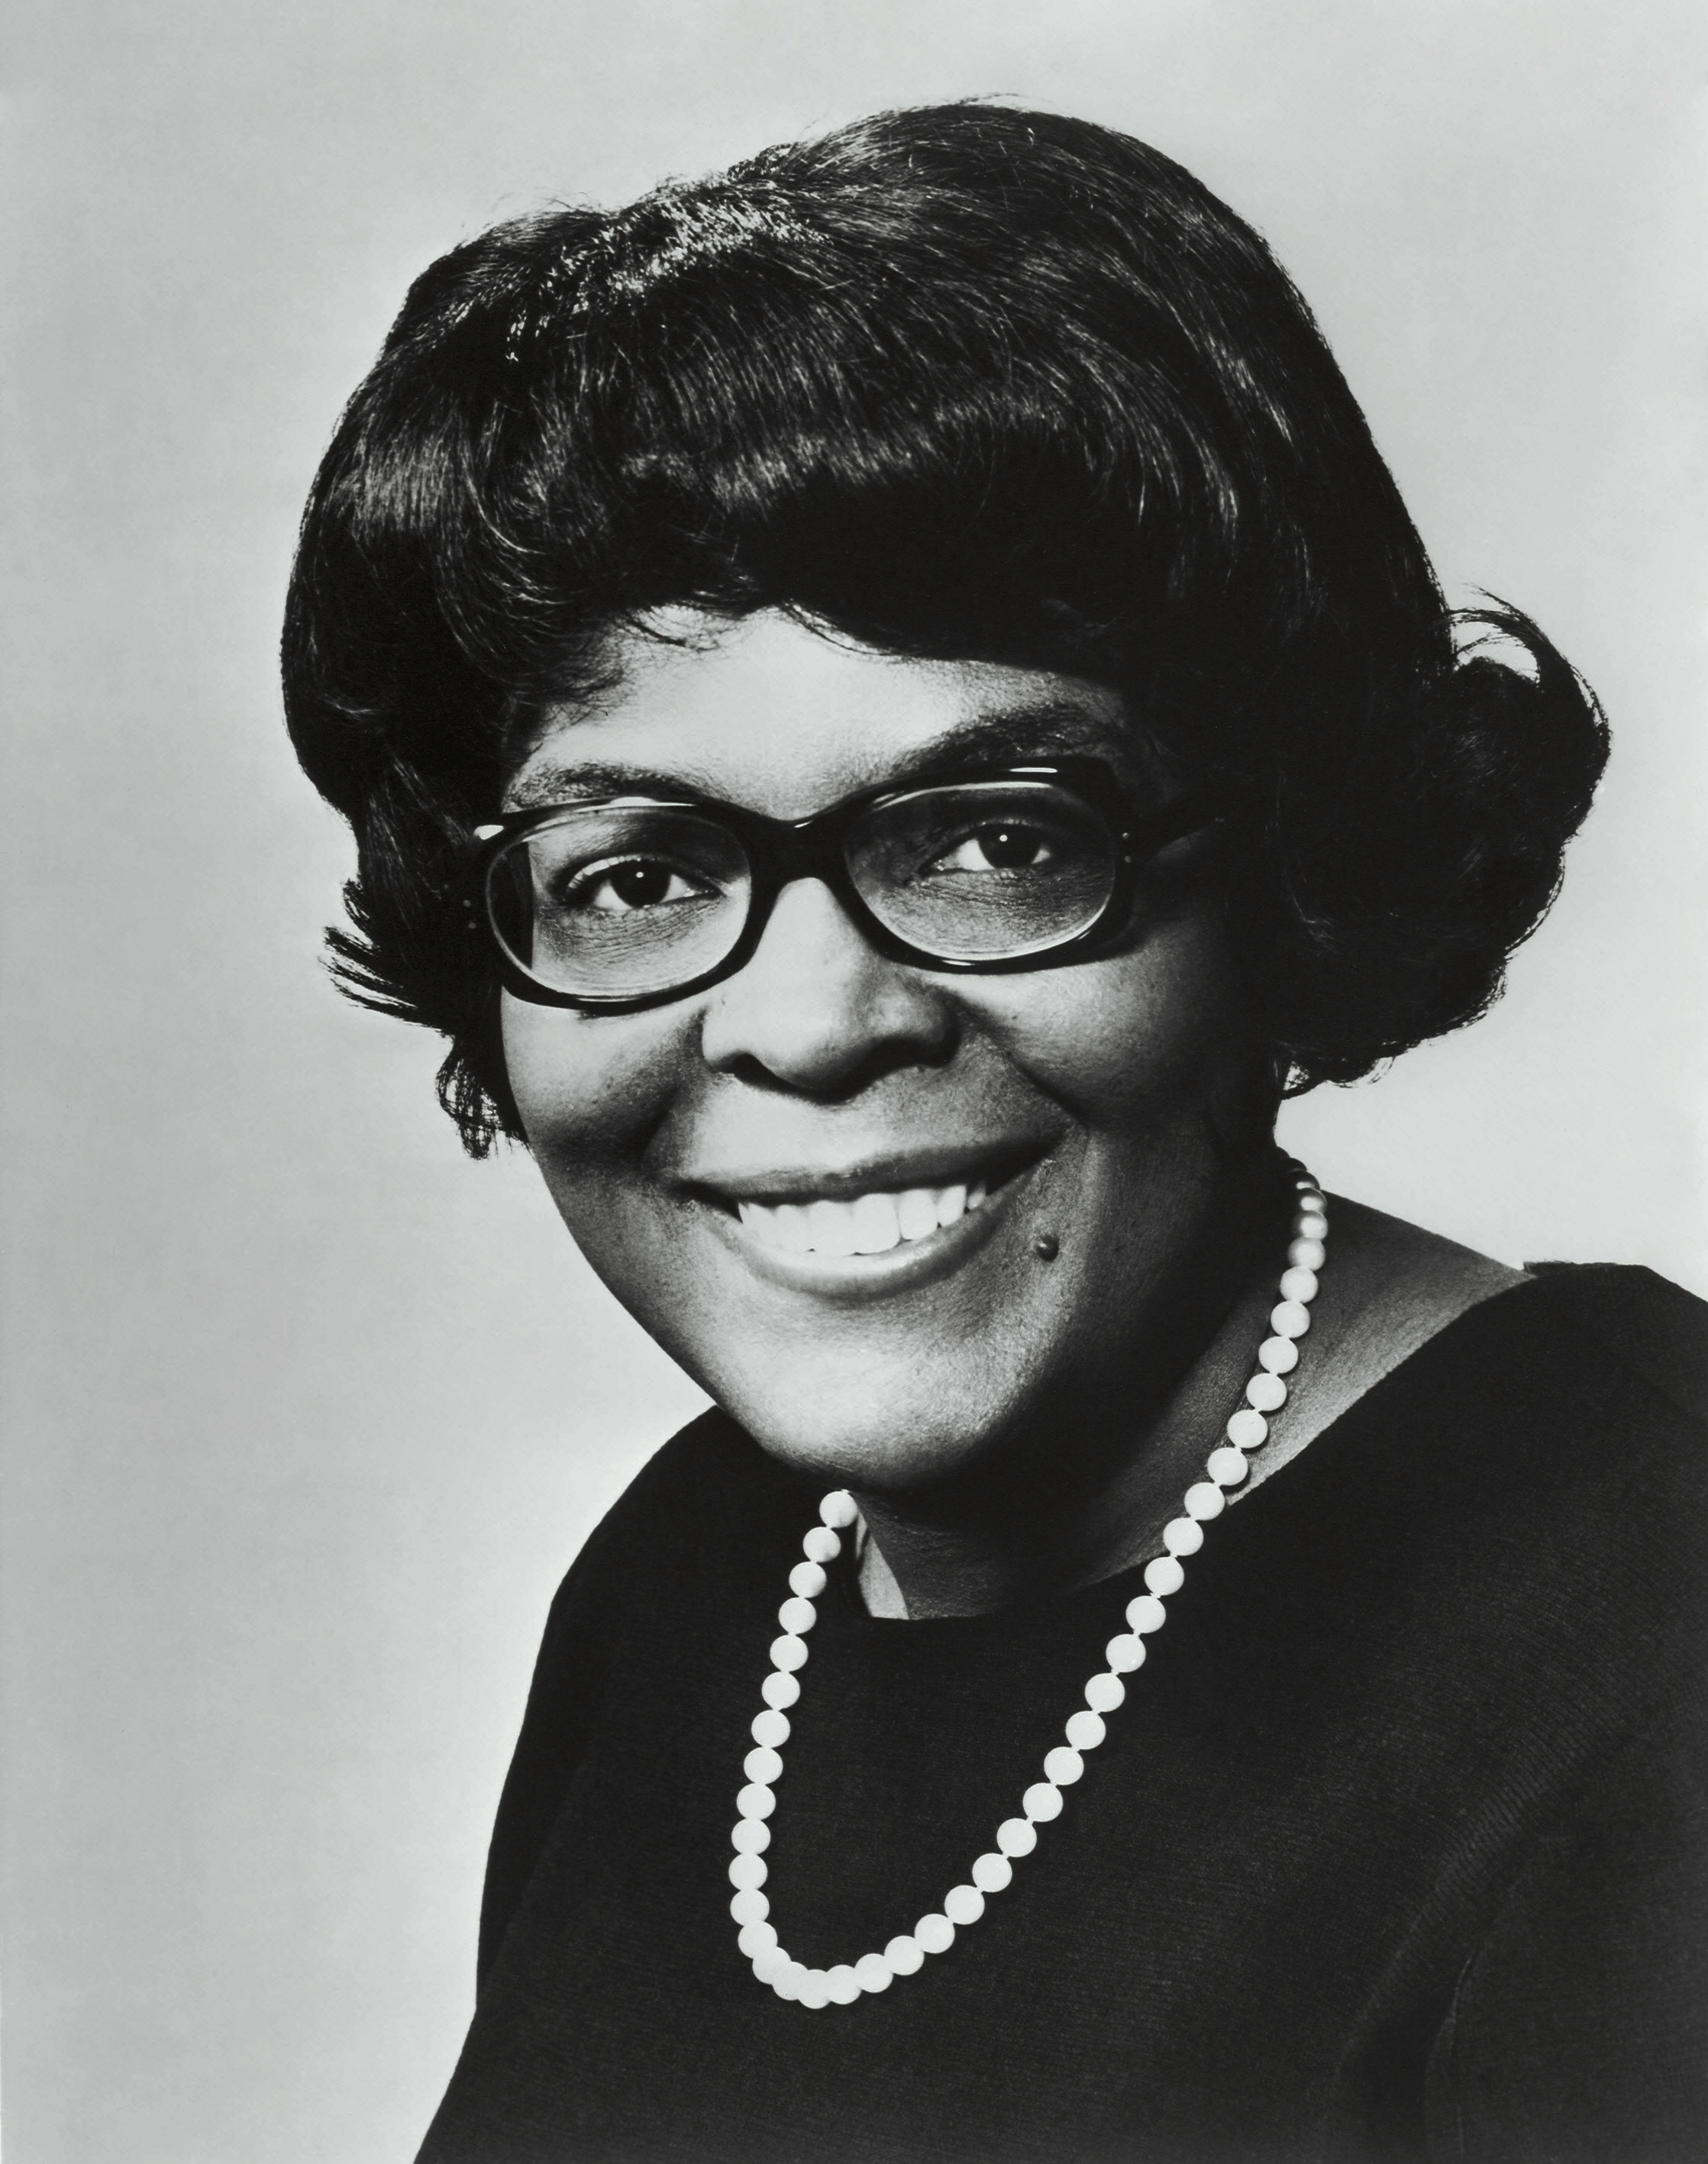 Little Known Black History Fact: Cardiss Collins